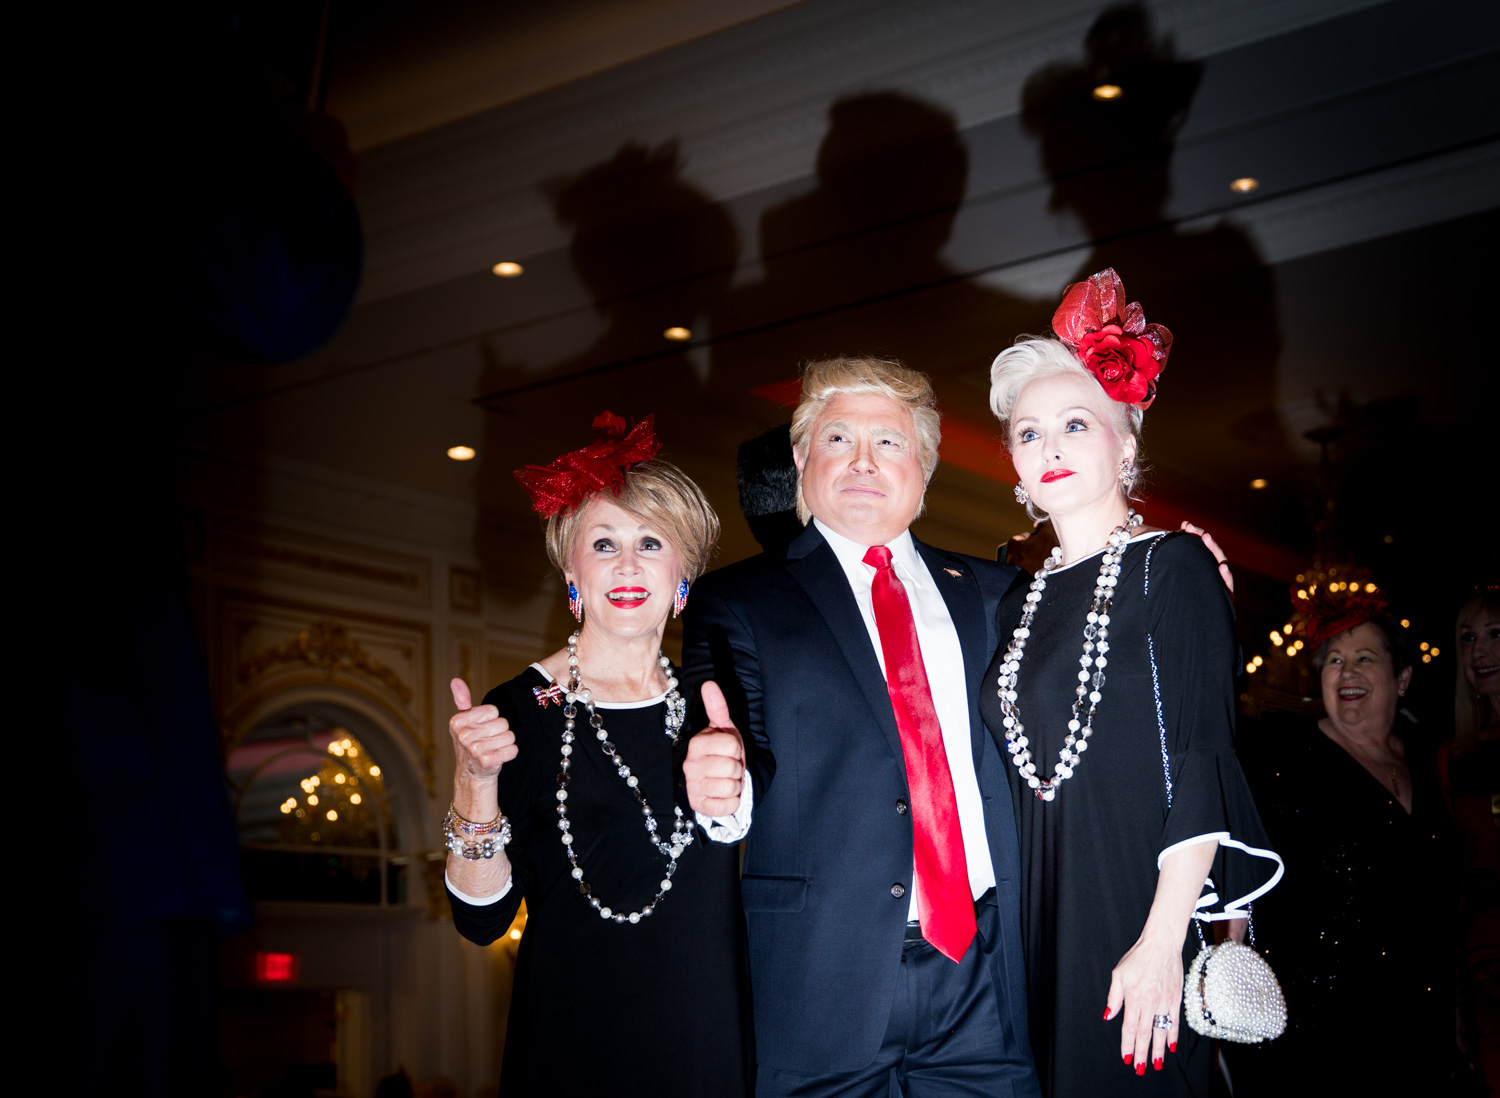 Guests at the Tea for Trump Birthday Extravaganza take a photo with a professional impersonator of President Trump at the Trump Hotel in Washington, DC on June 24, 2018.